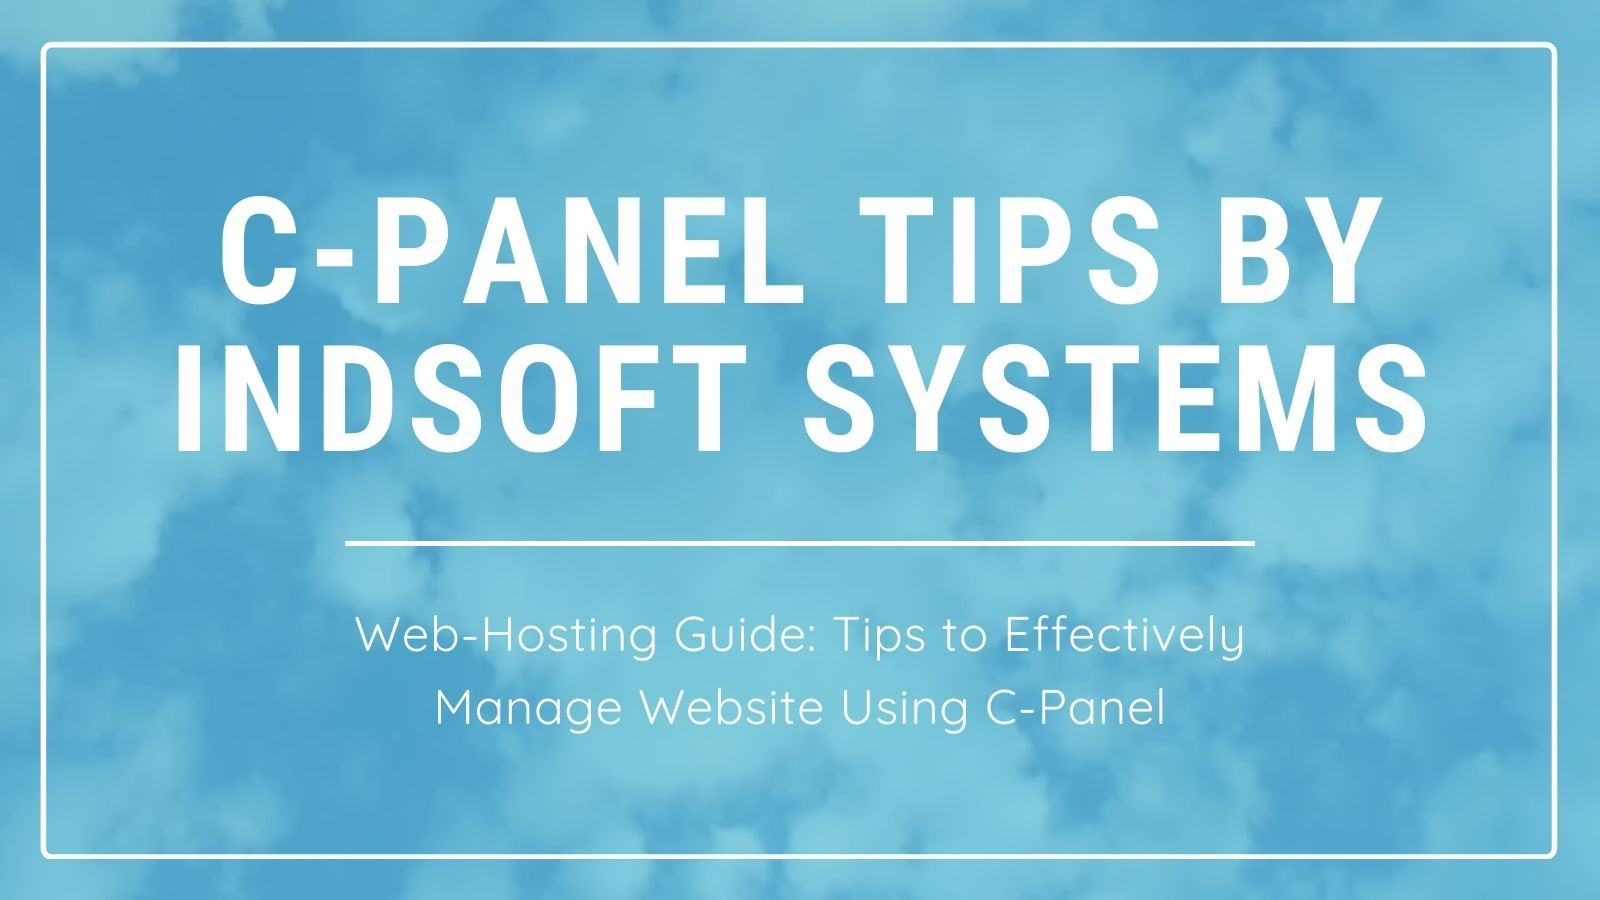 /9-tips-to-effectively-manage-your-website-using-cpanel-g02v33ex feature image